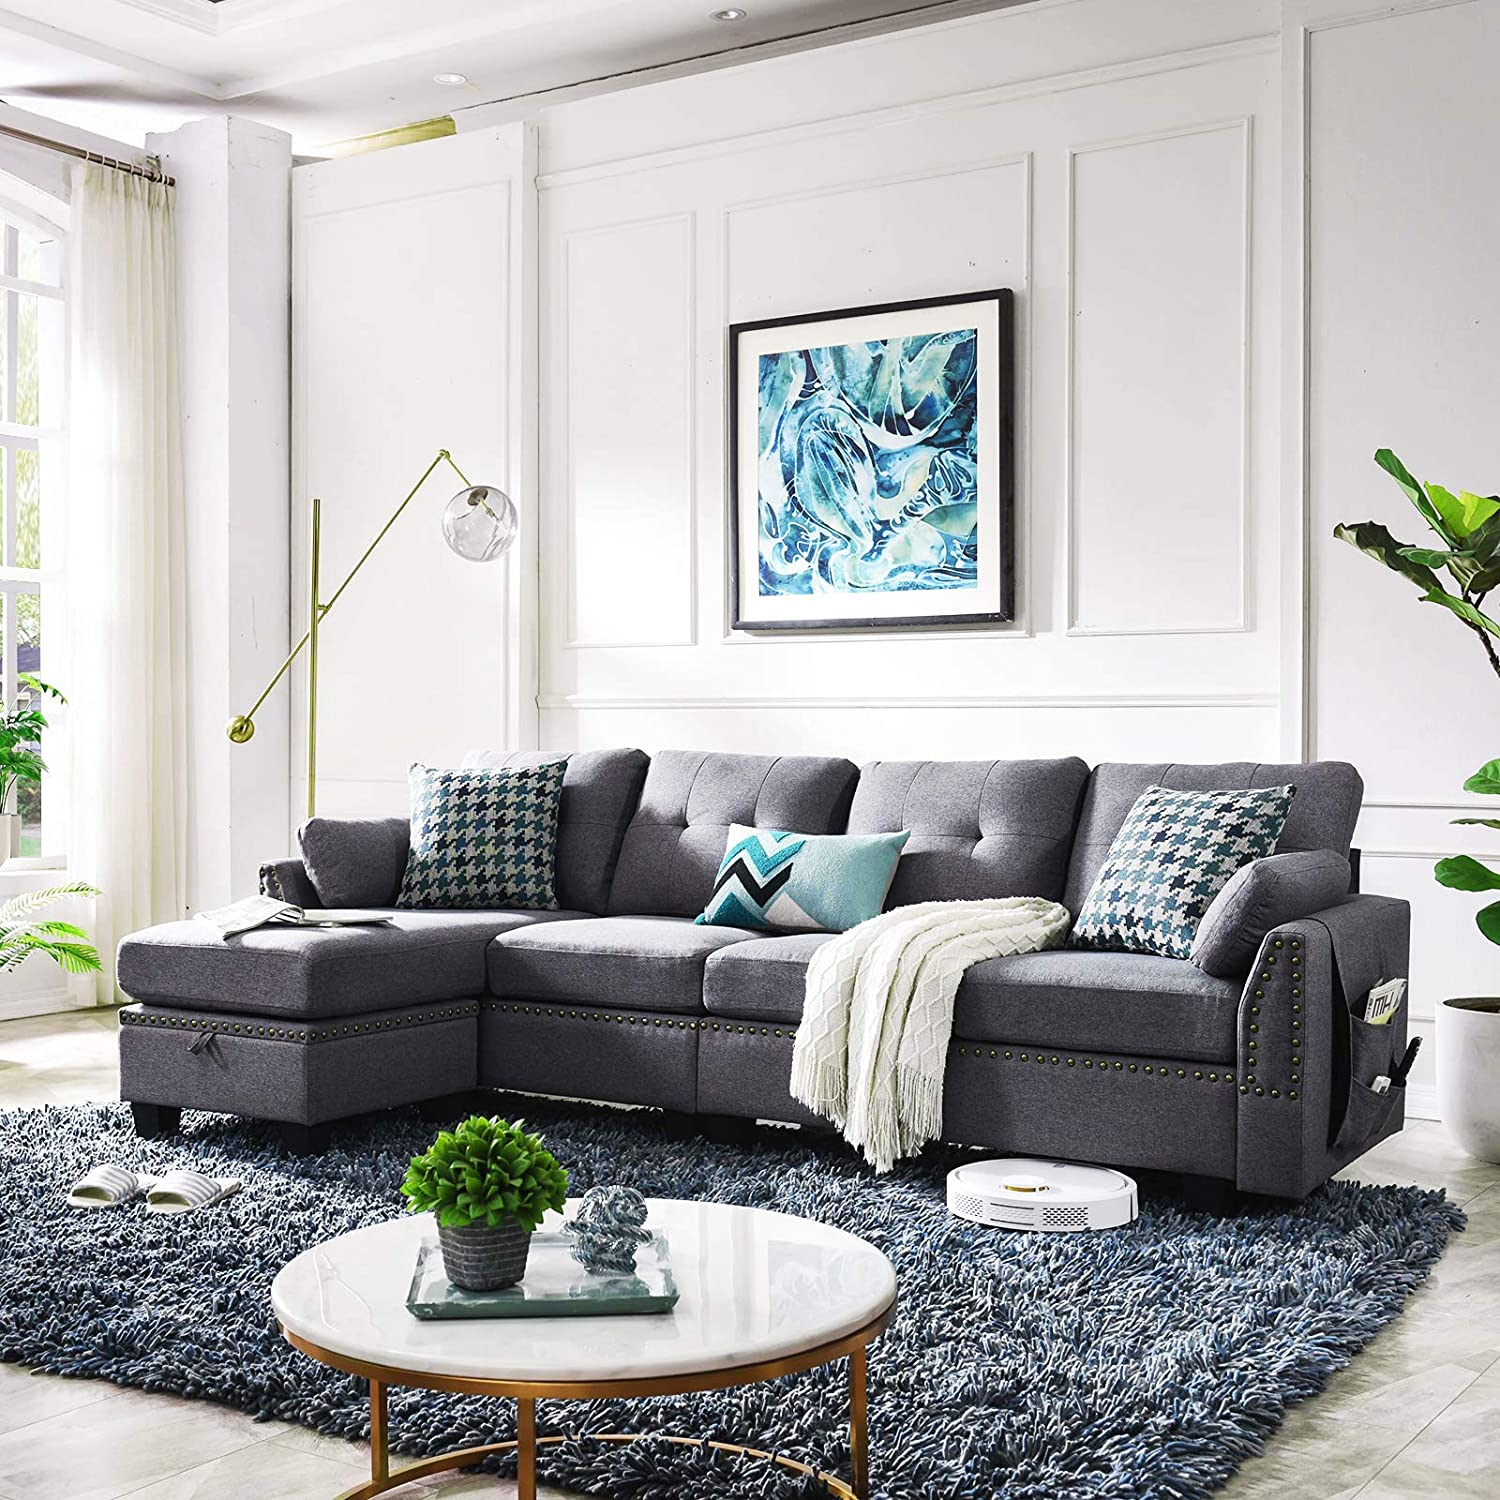 honbay reversible sectional sofa couch for living room l shape sofa couch 4 seat sofas sectional for apartment dark grey